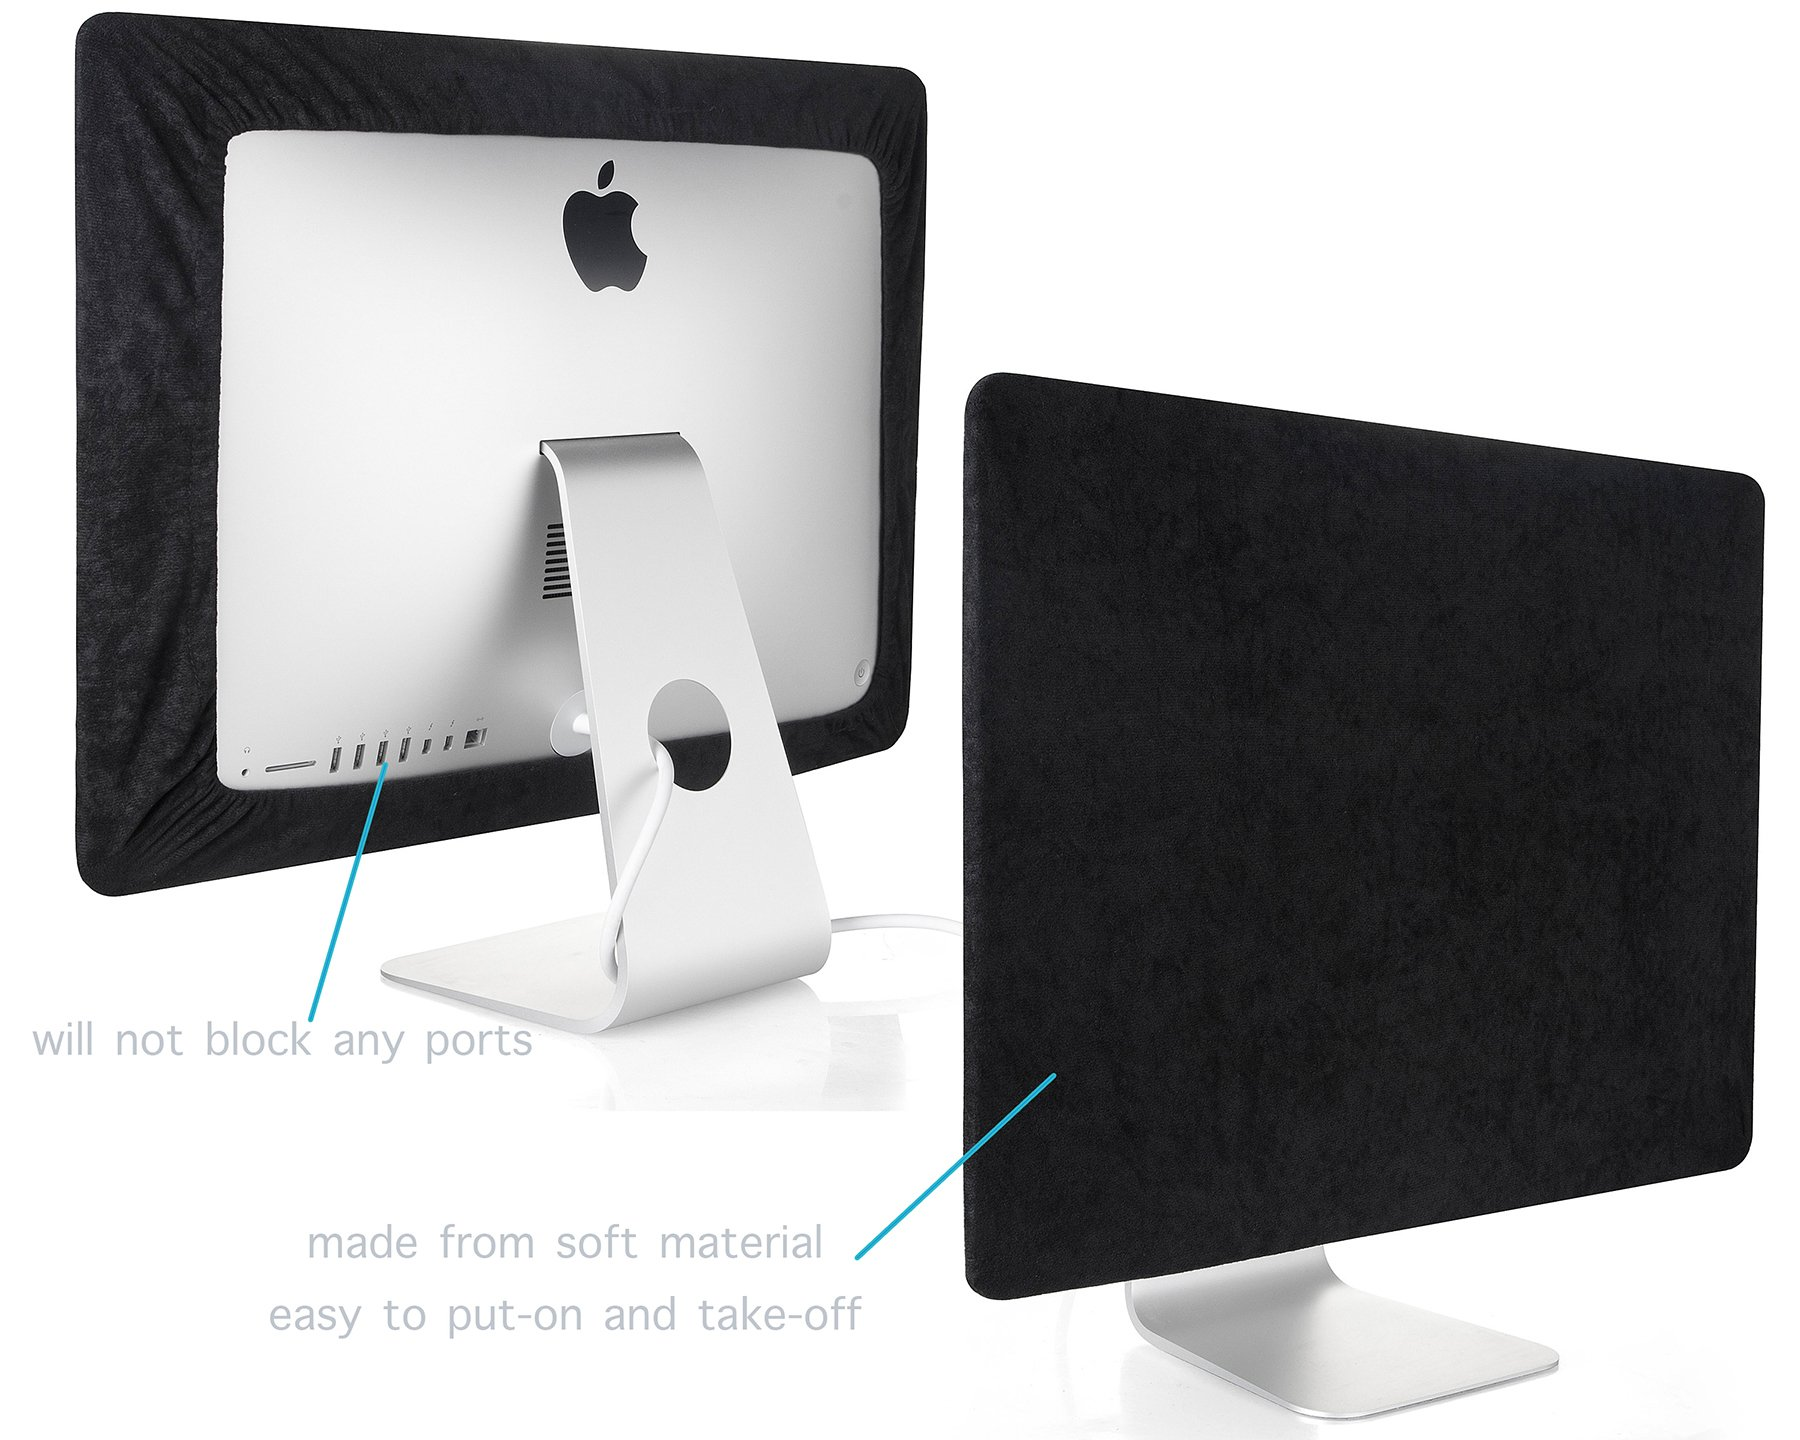 Kuzy - iMac Cover 27 inch | Monitor Cover 27 inch Computer Screen Protector (Models A1862, A1419, A1312) Newest Version Retina 5K iMac 27 inch Cover - Black by Kuzy